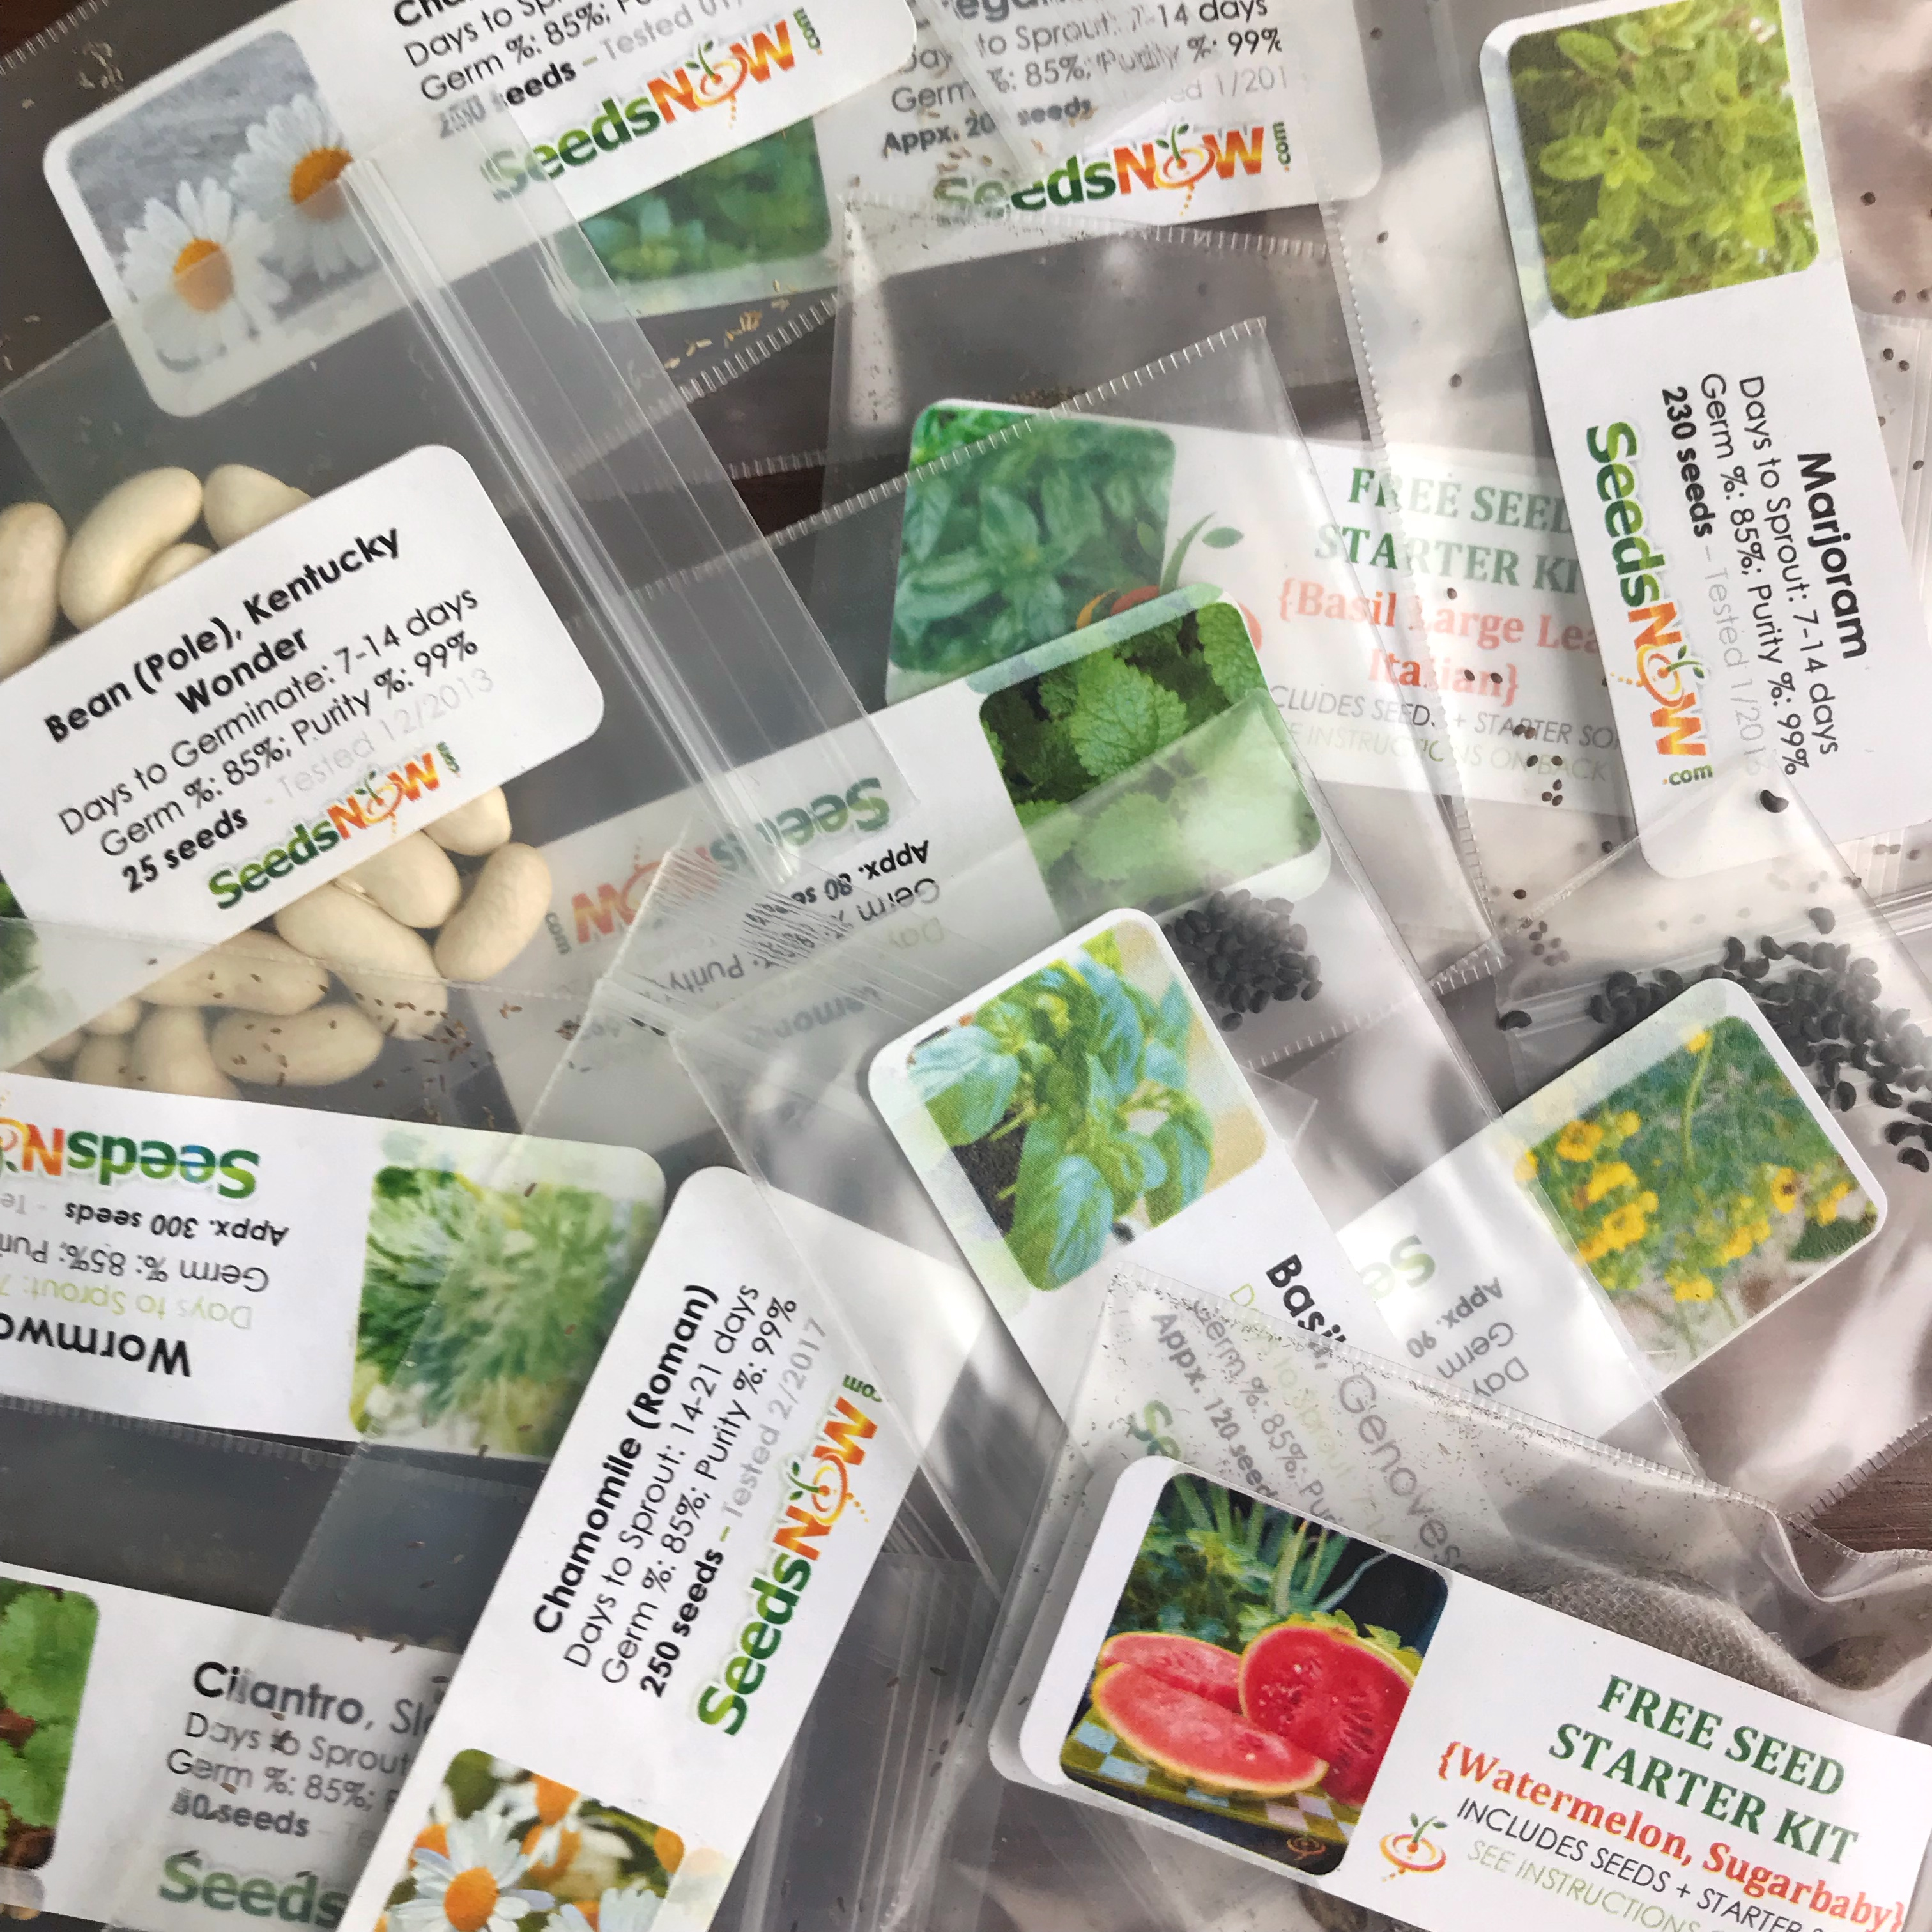 Urban Organic Gardener's Monthly Seed Club